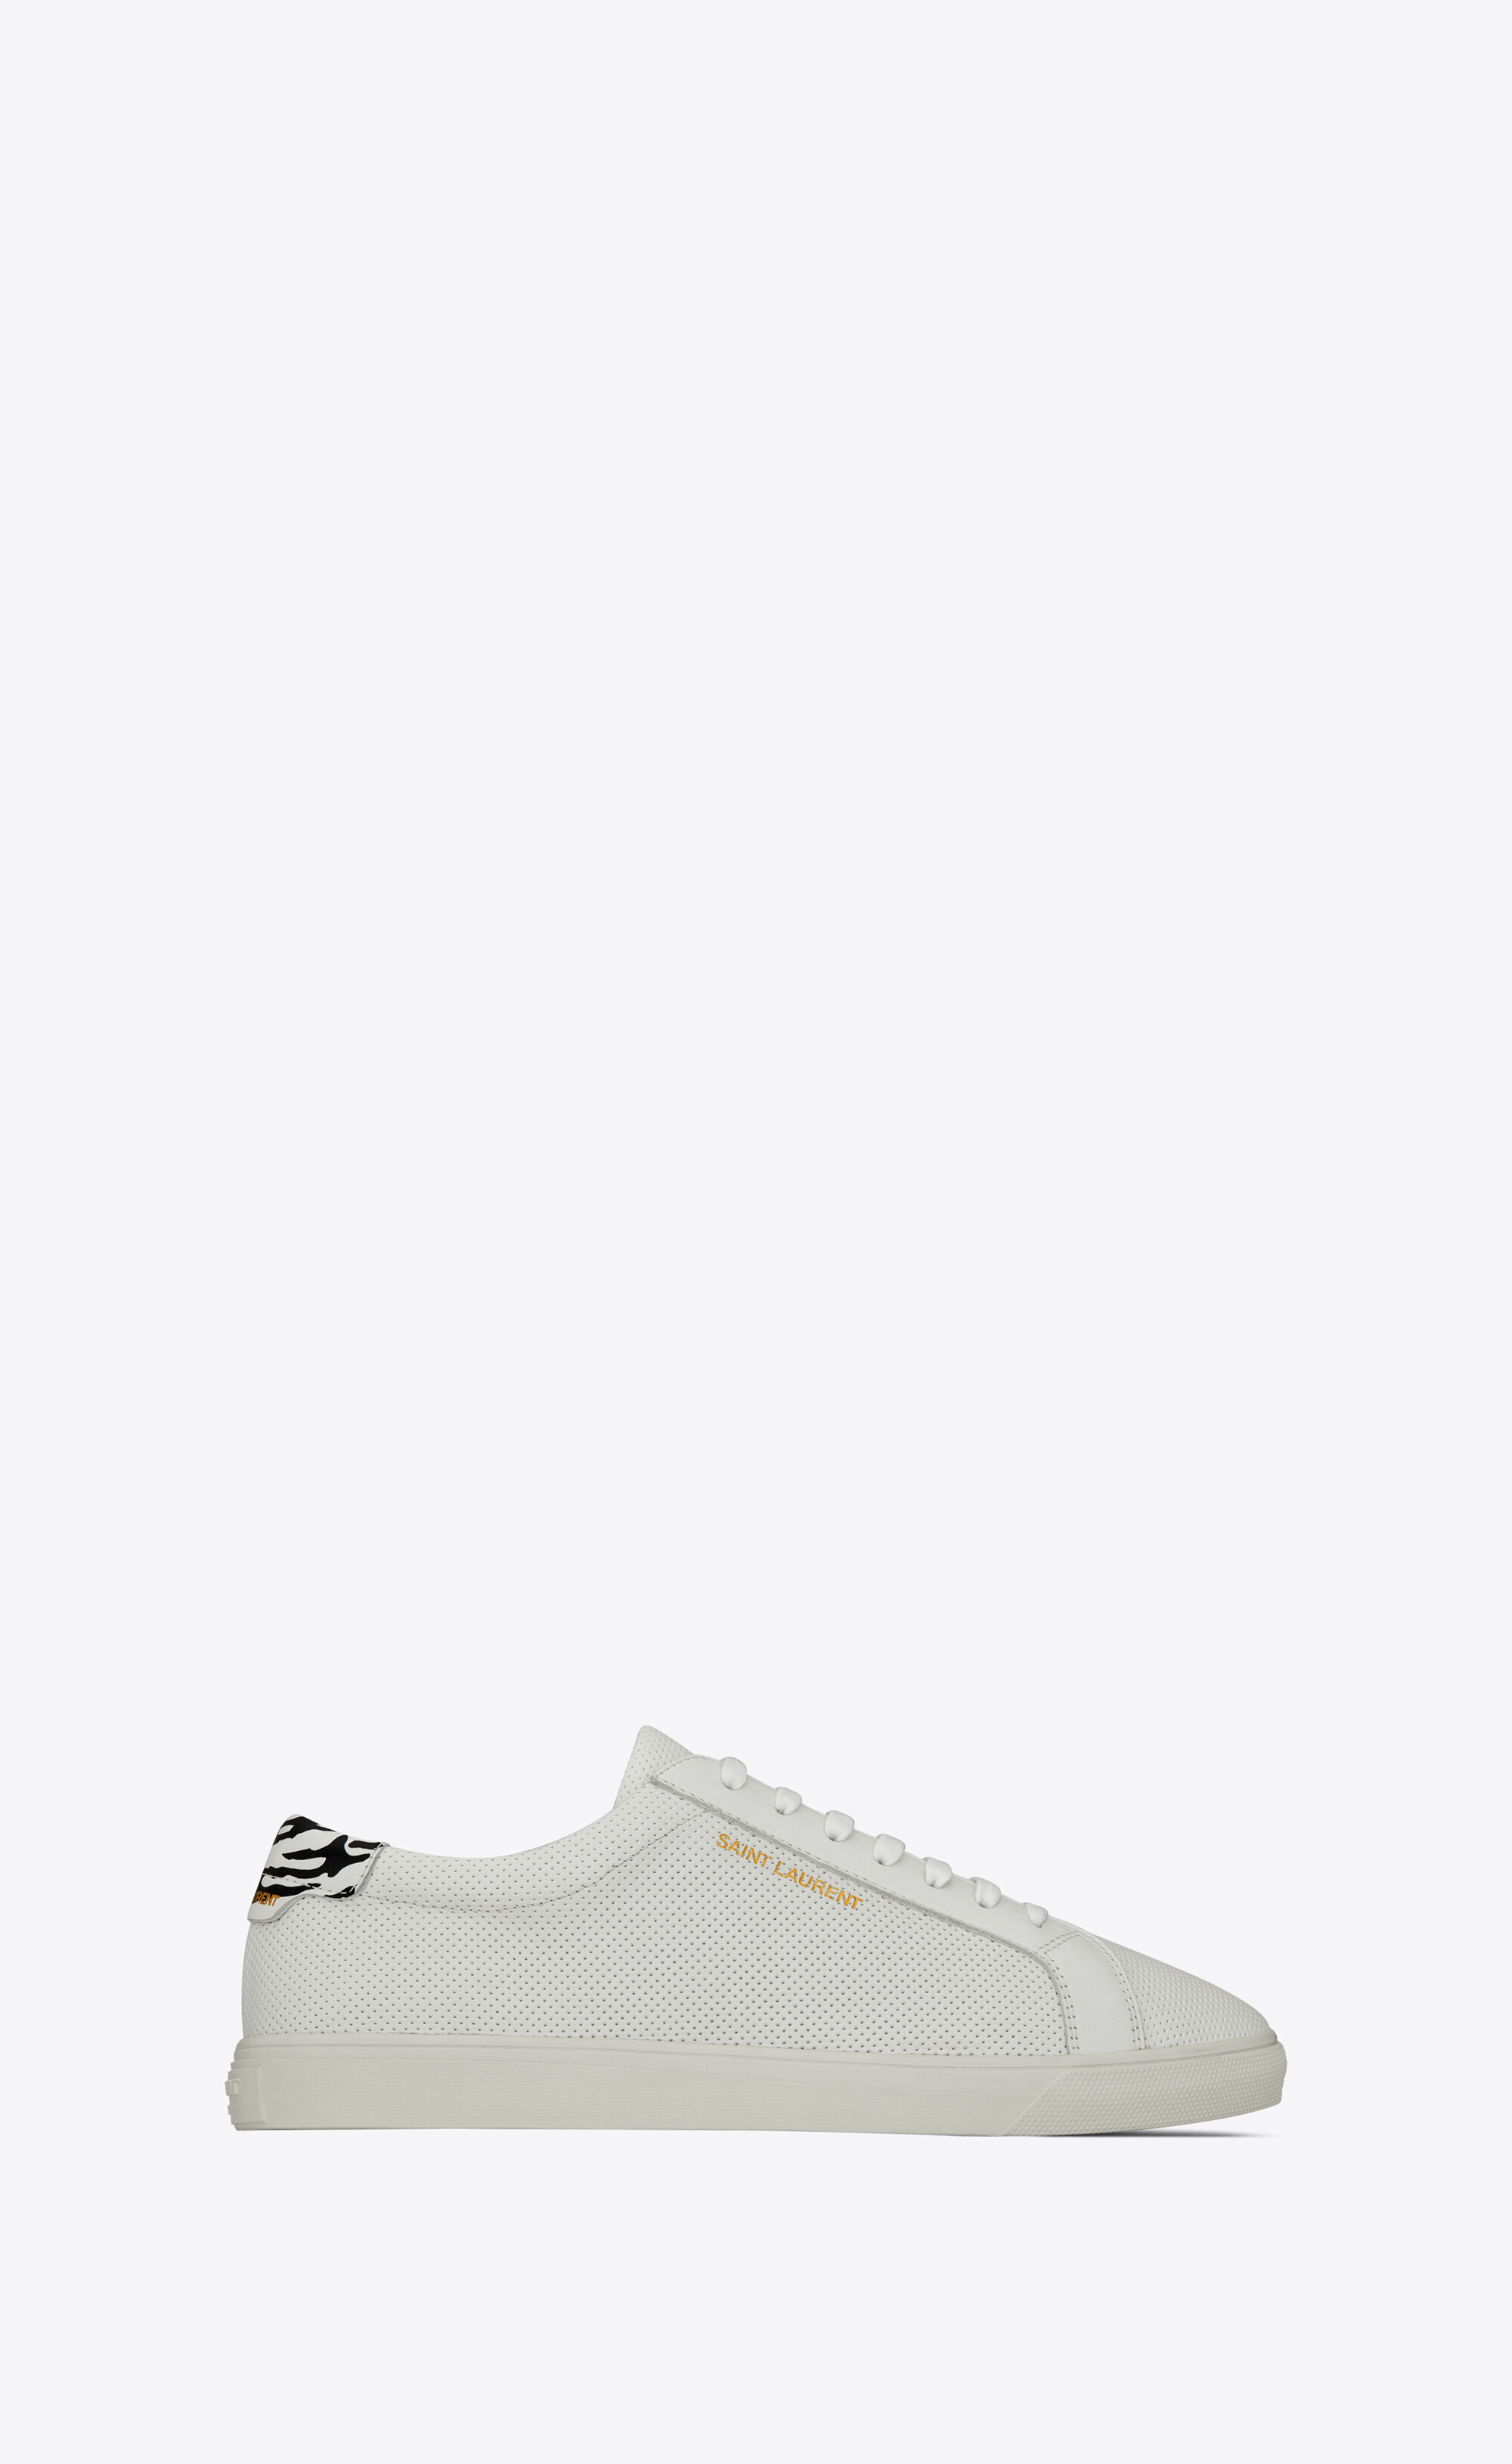 ANDY sneakers in perforated leather and